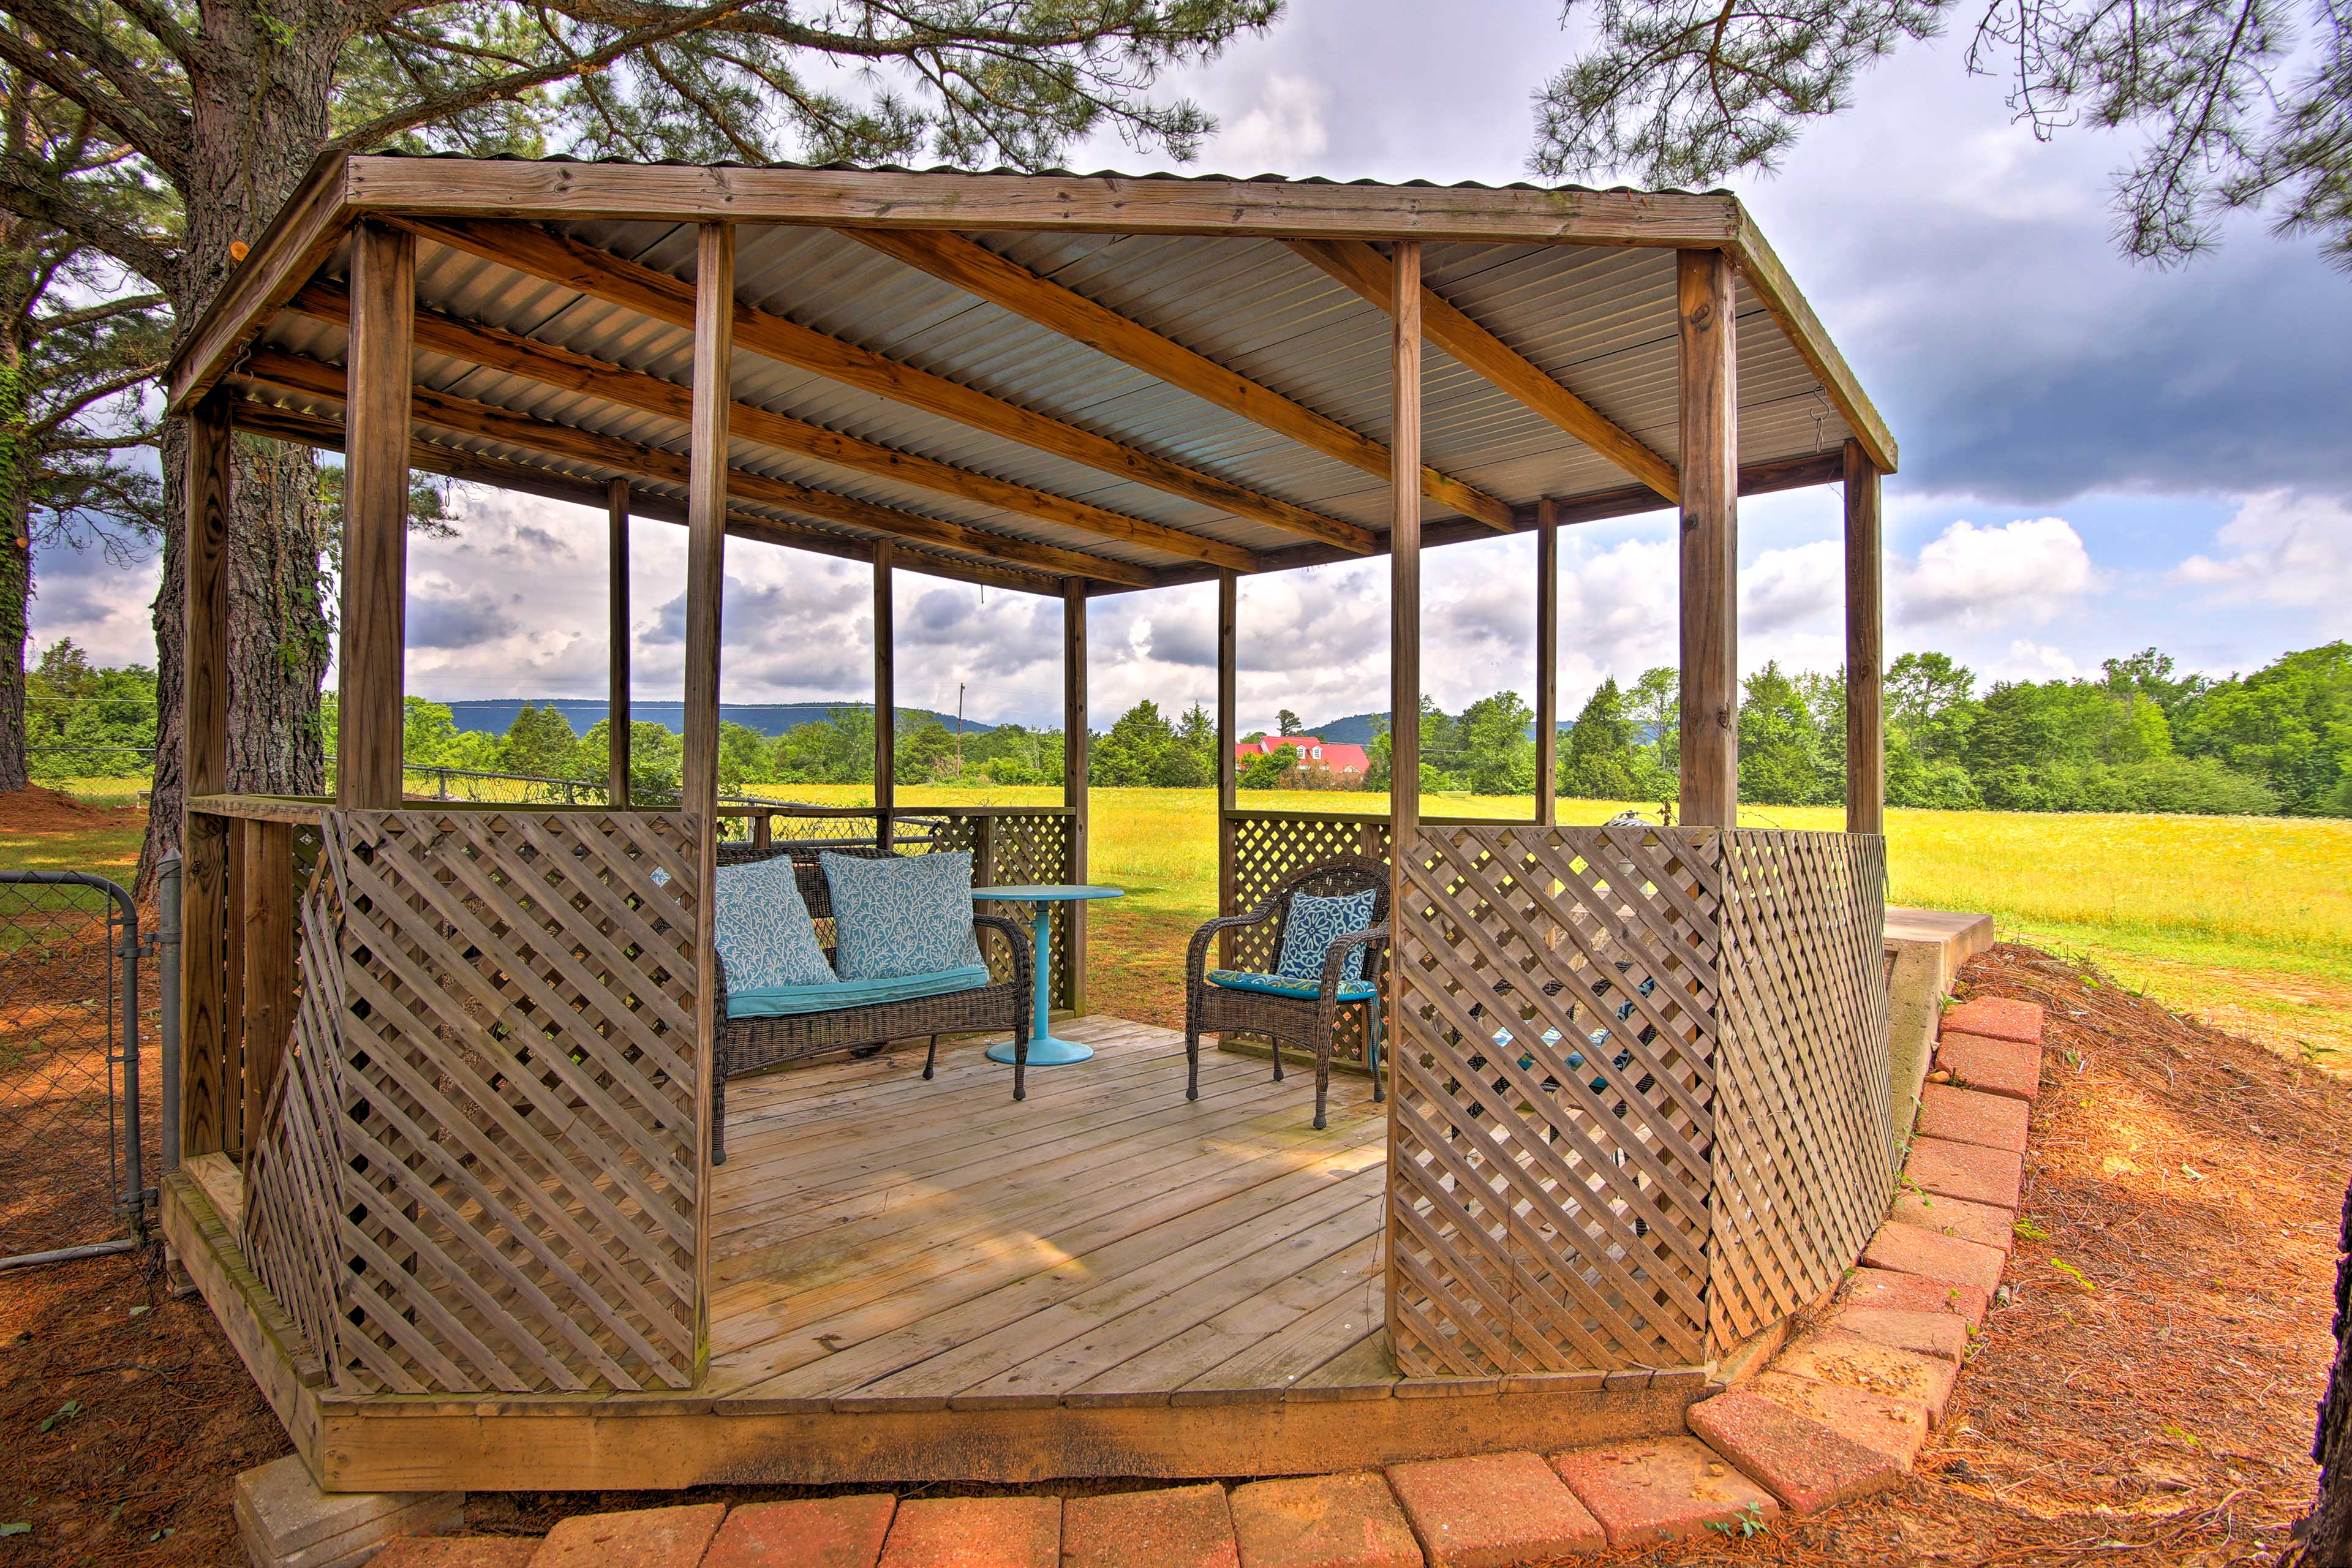 Soak in mountain views from the shaded comfort of the furnished gazebo.